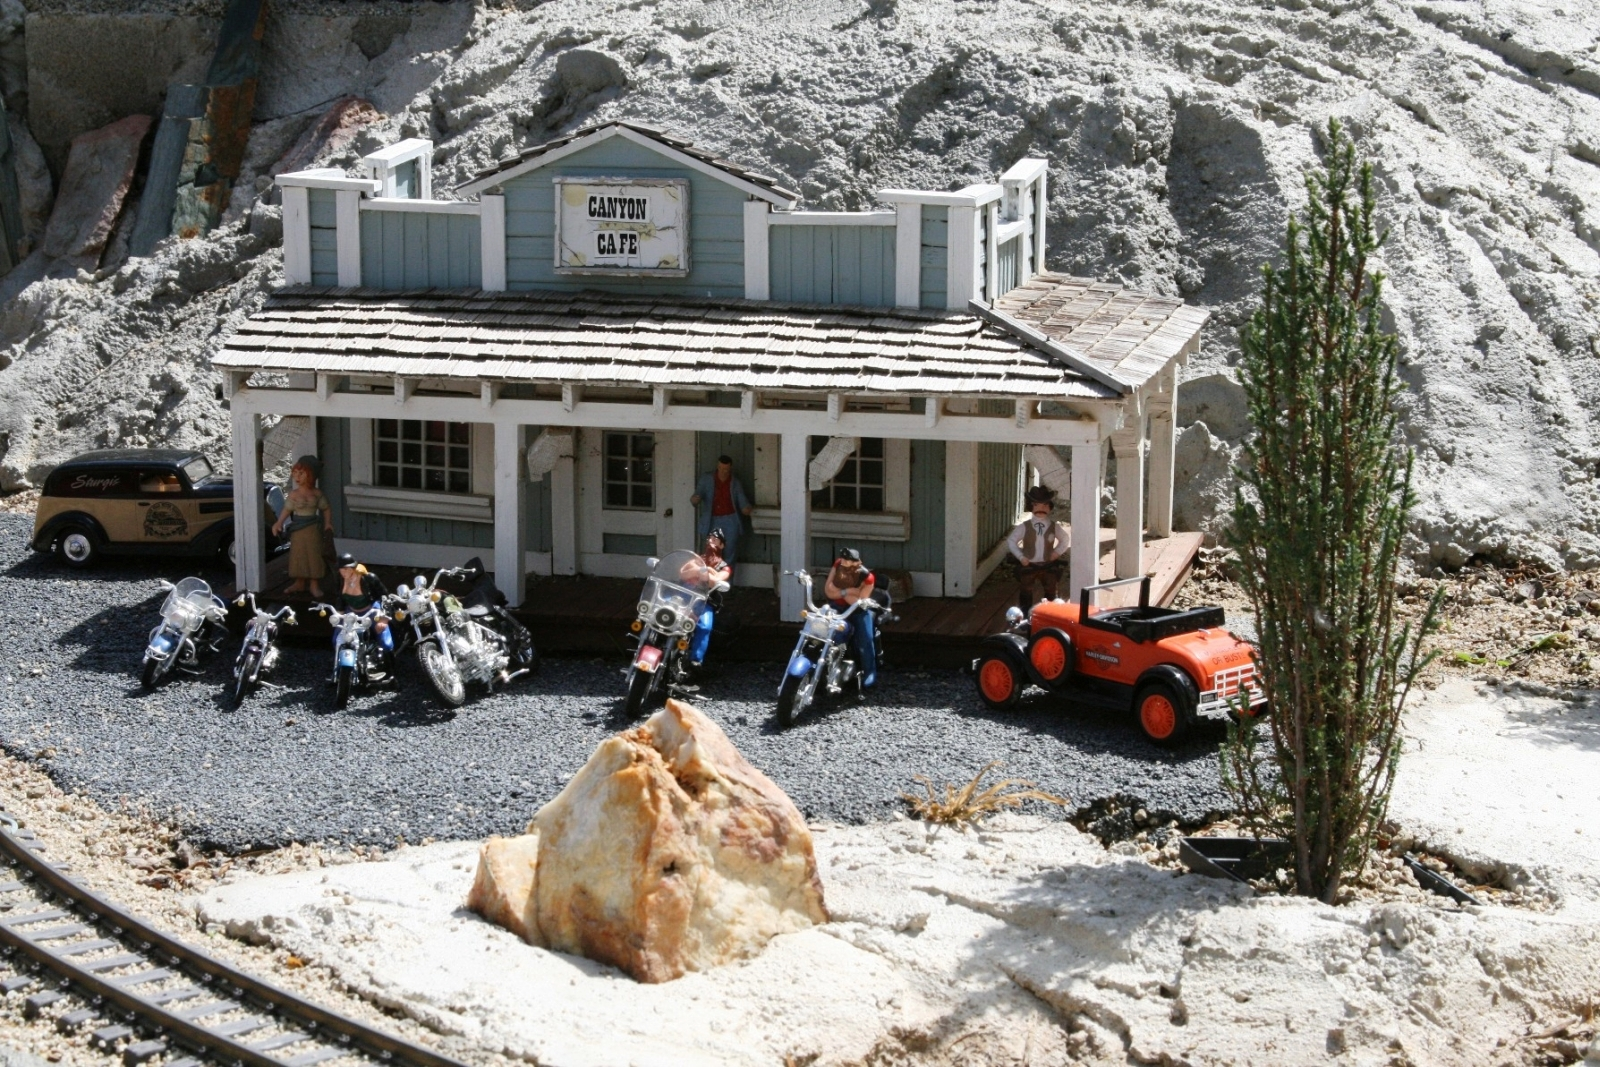 Lizer The Canyon Cafe is a popular biker hangout